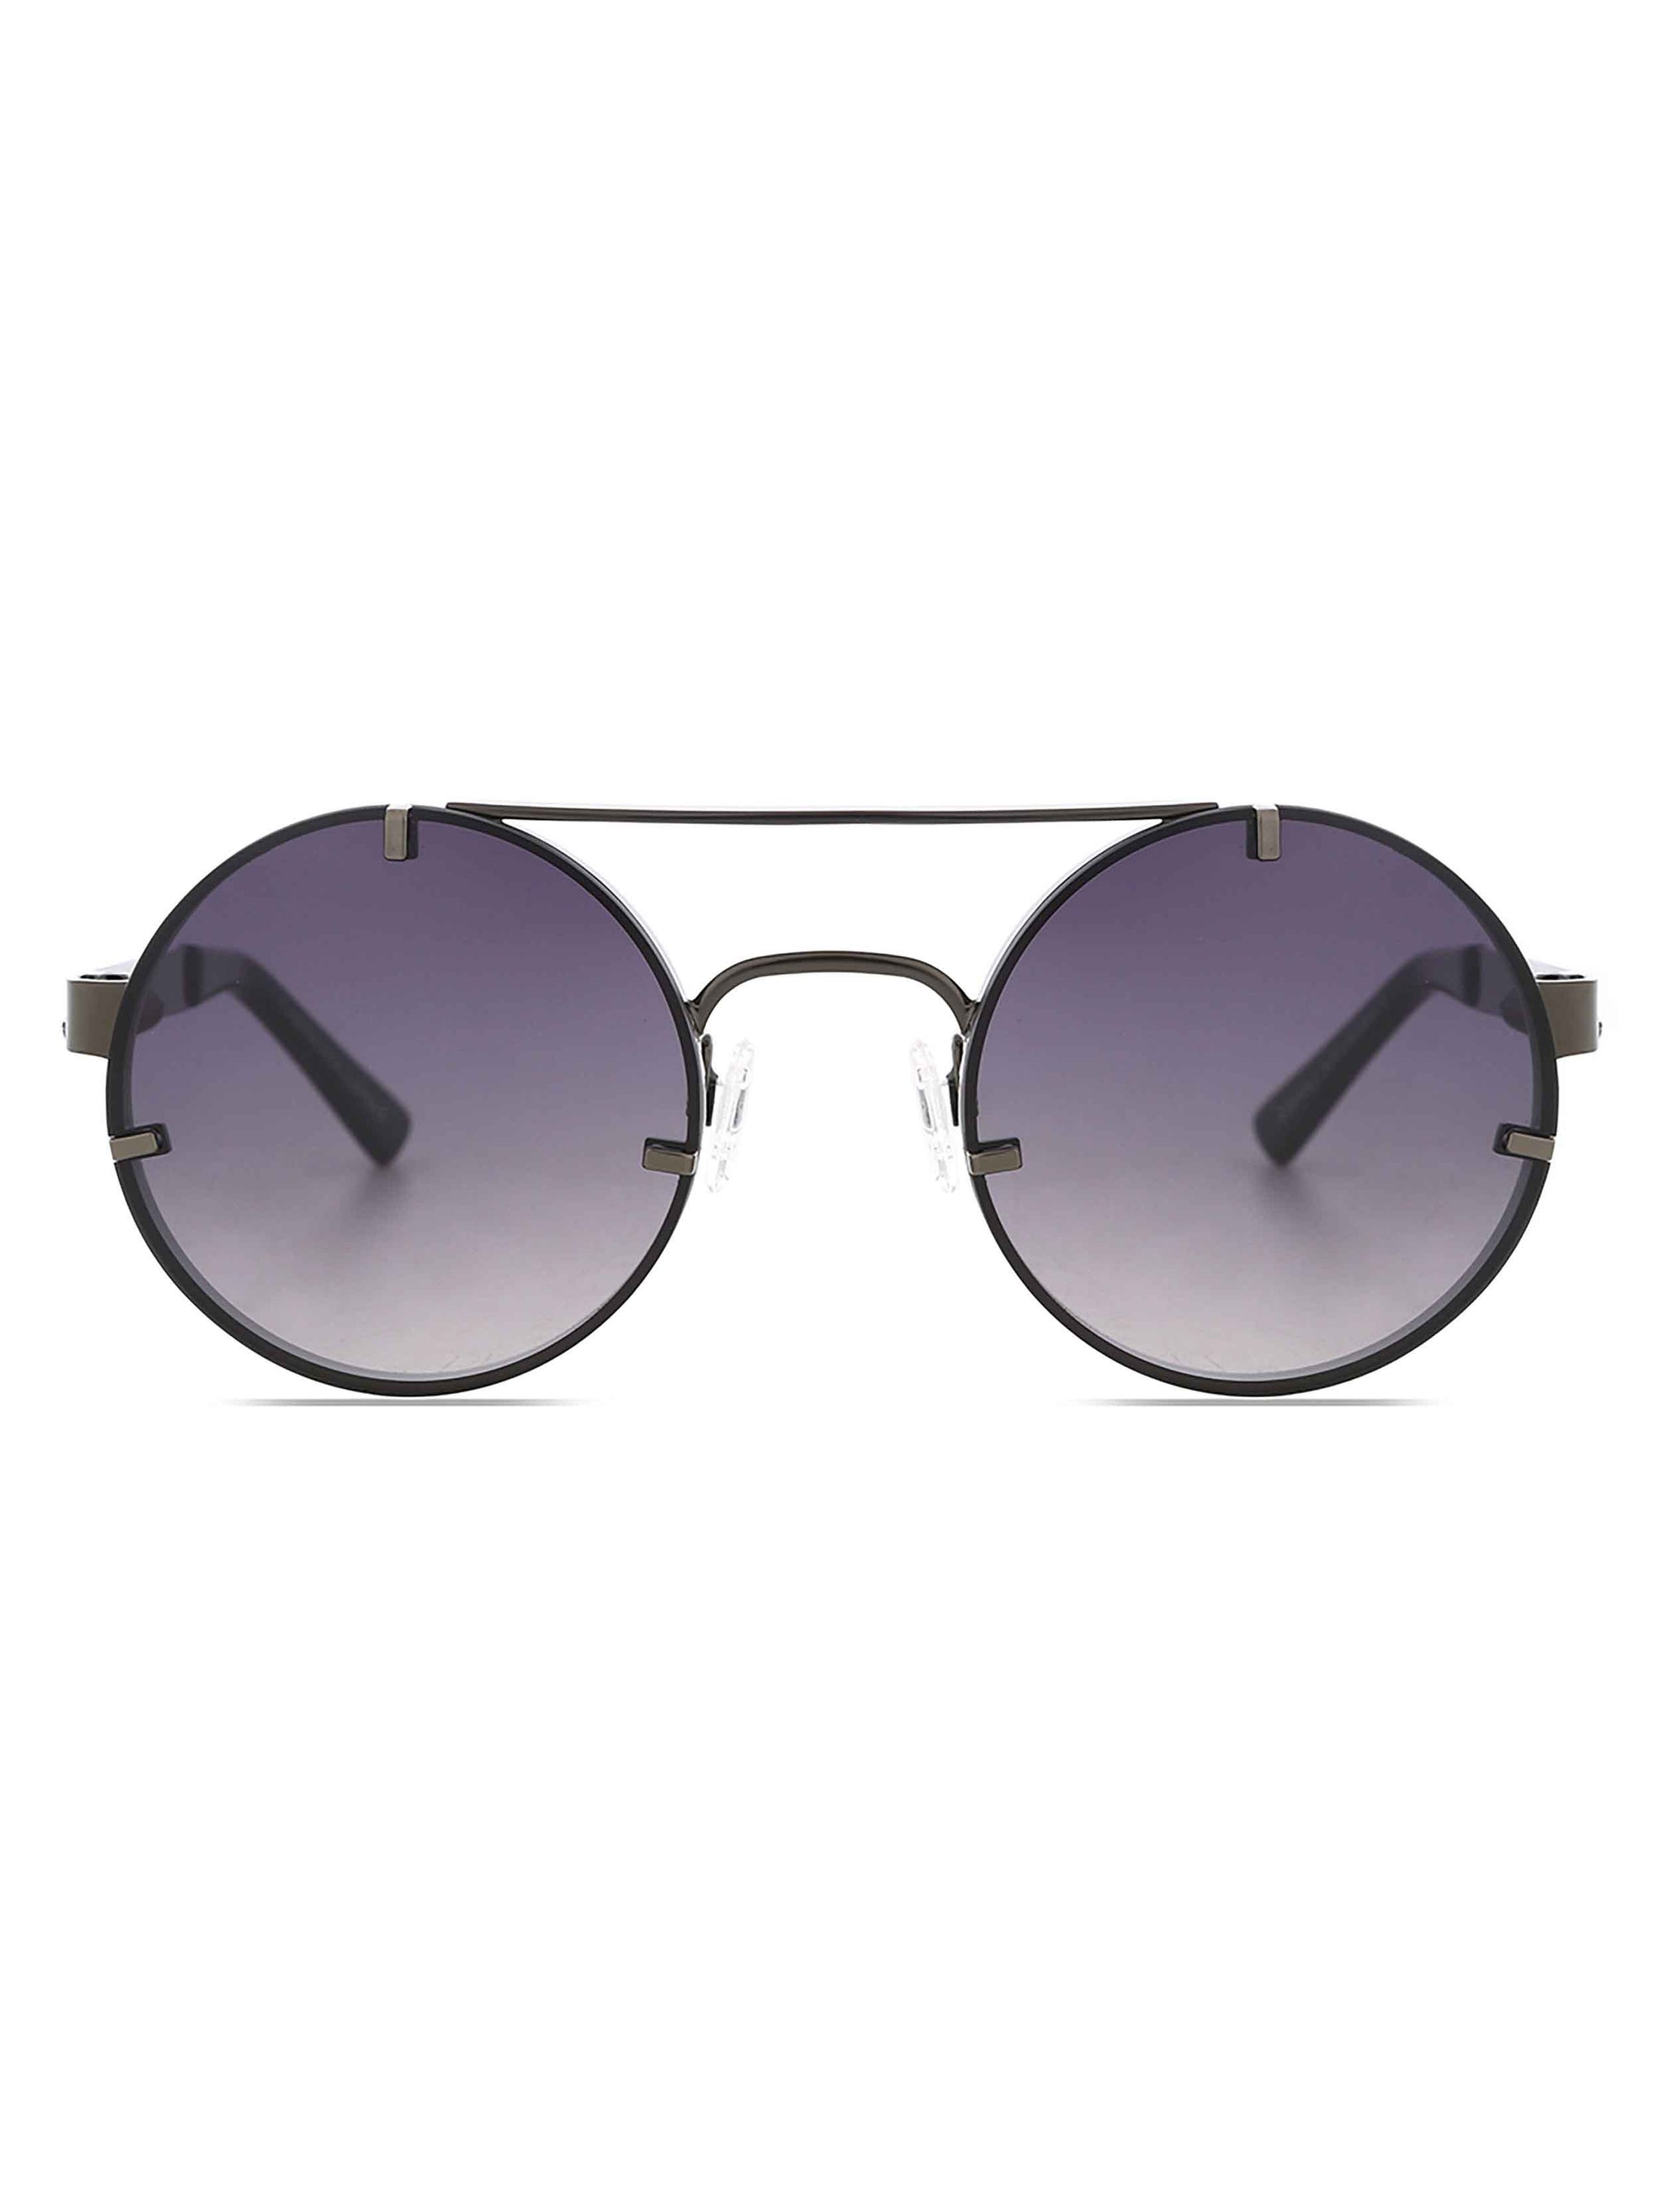 Lentes Carolina Lemke CL6630 02